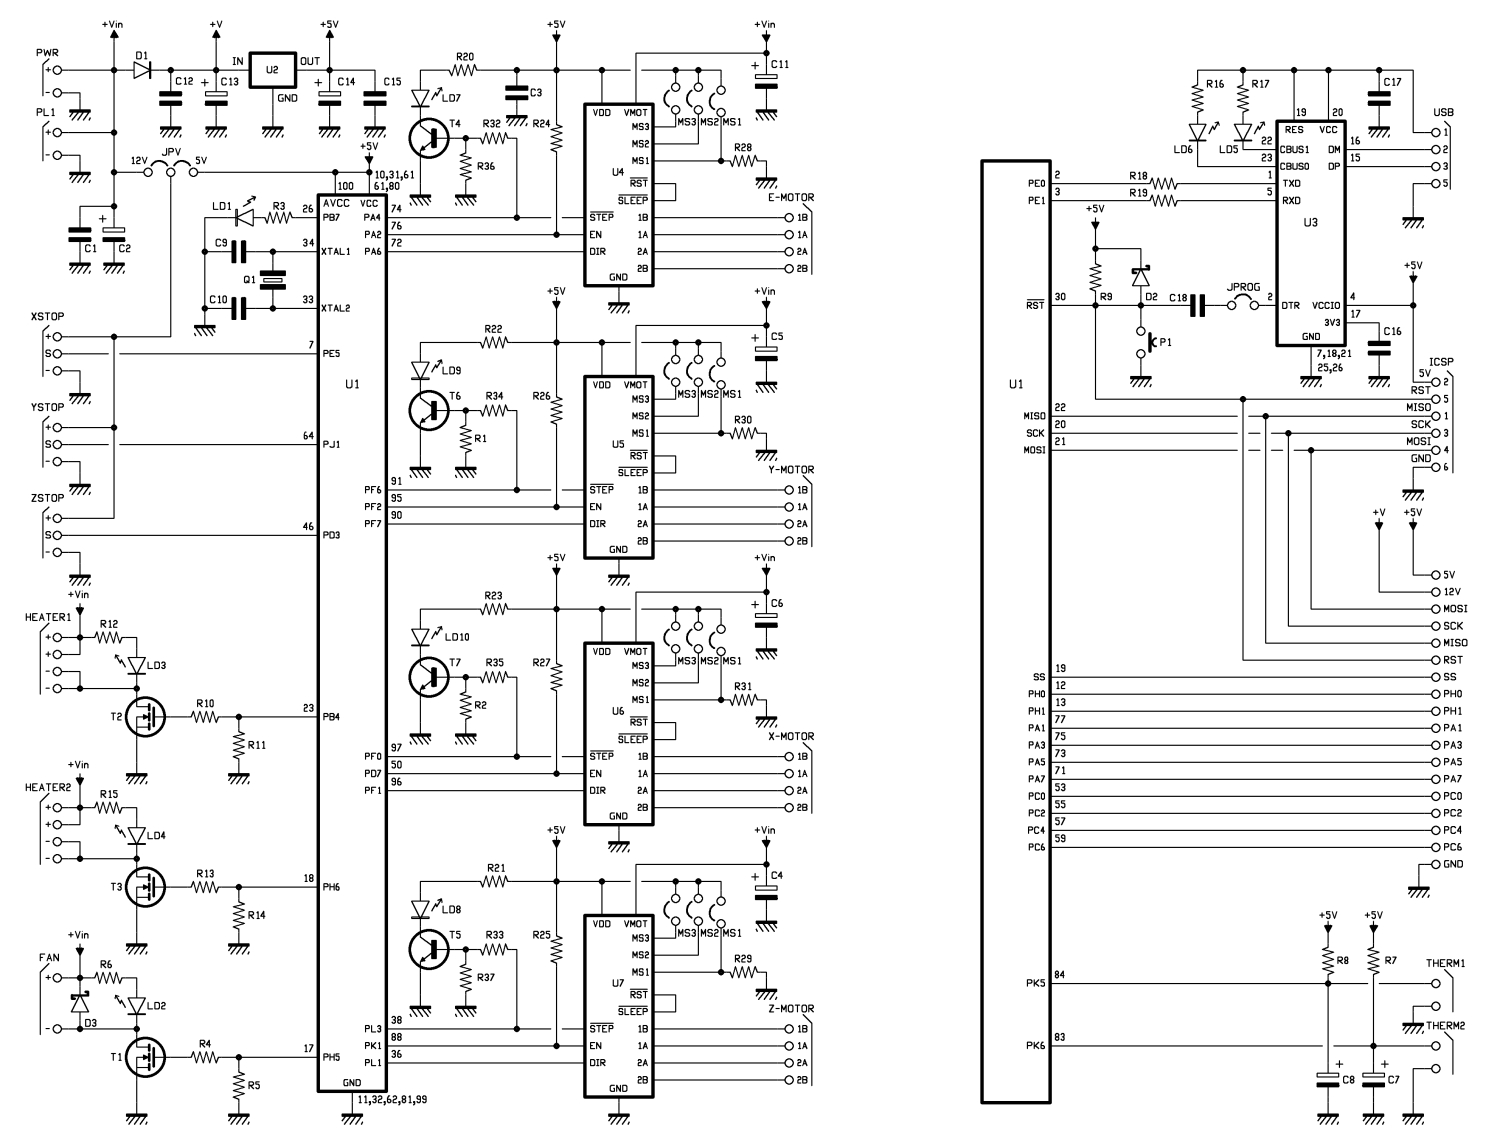 Principle Of Wire Cut Edm together with Cnc Limit Switch Wiring Diagram furthermore Nema Frame Size besides 44802 Problems Stepper Driver L297 L6203 together with Fanuc Cable Wiring Diagrams. on cnc servo diagram